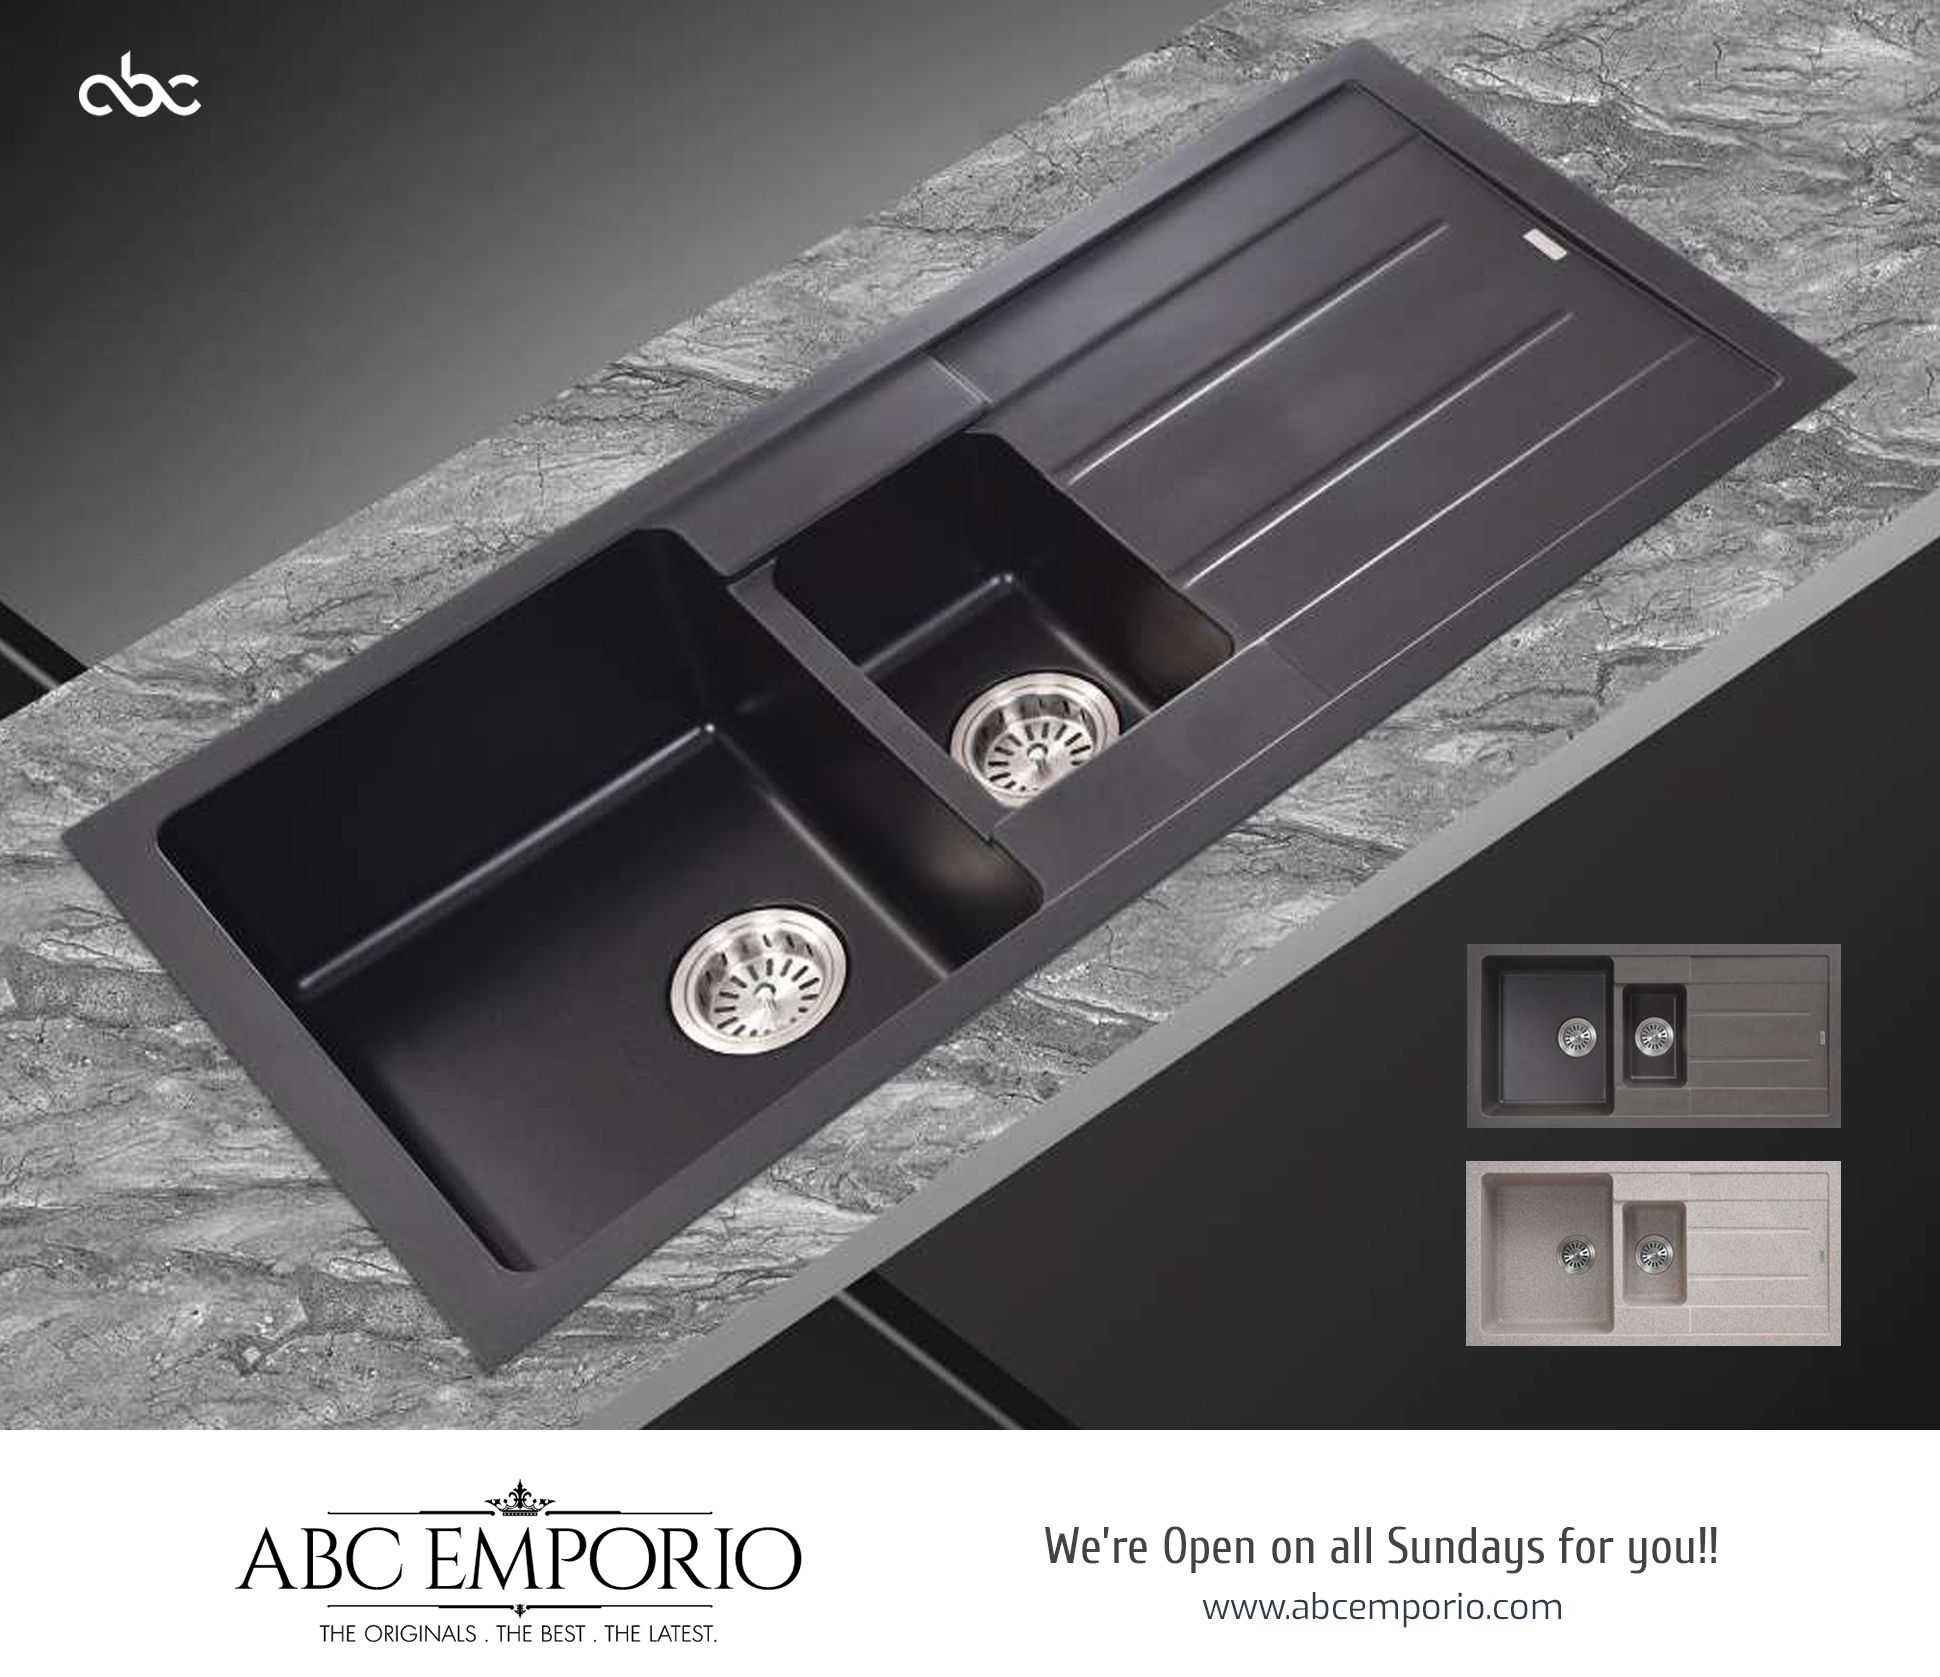 Granite Kitchen Sink From Worlds Top Brands Available Abc Emporio Granite Kitchen Sinks Kitchen Design Open Wash Basin